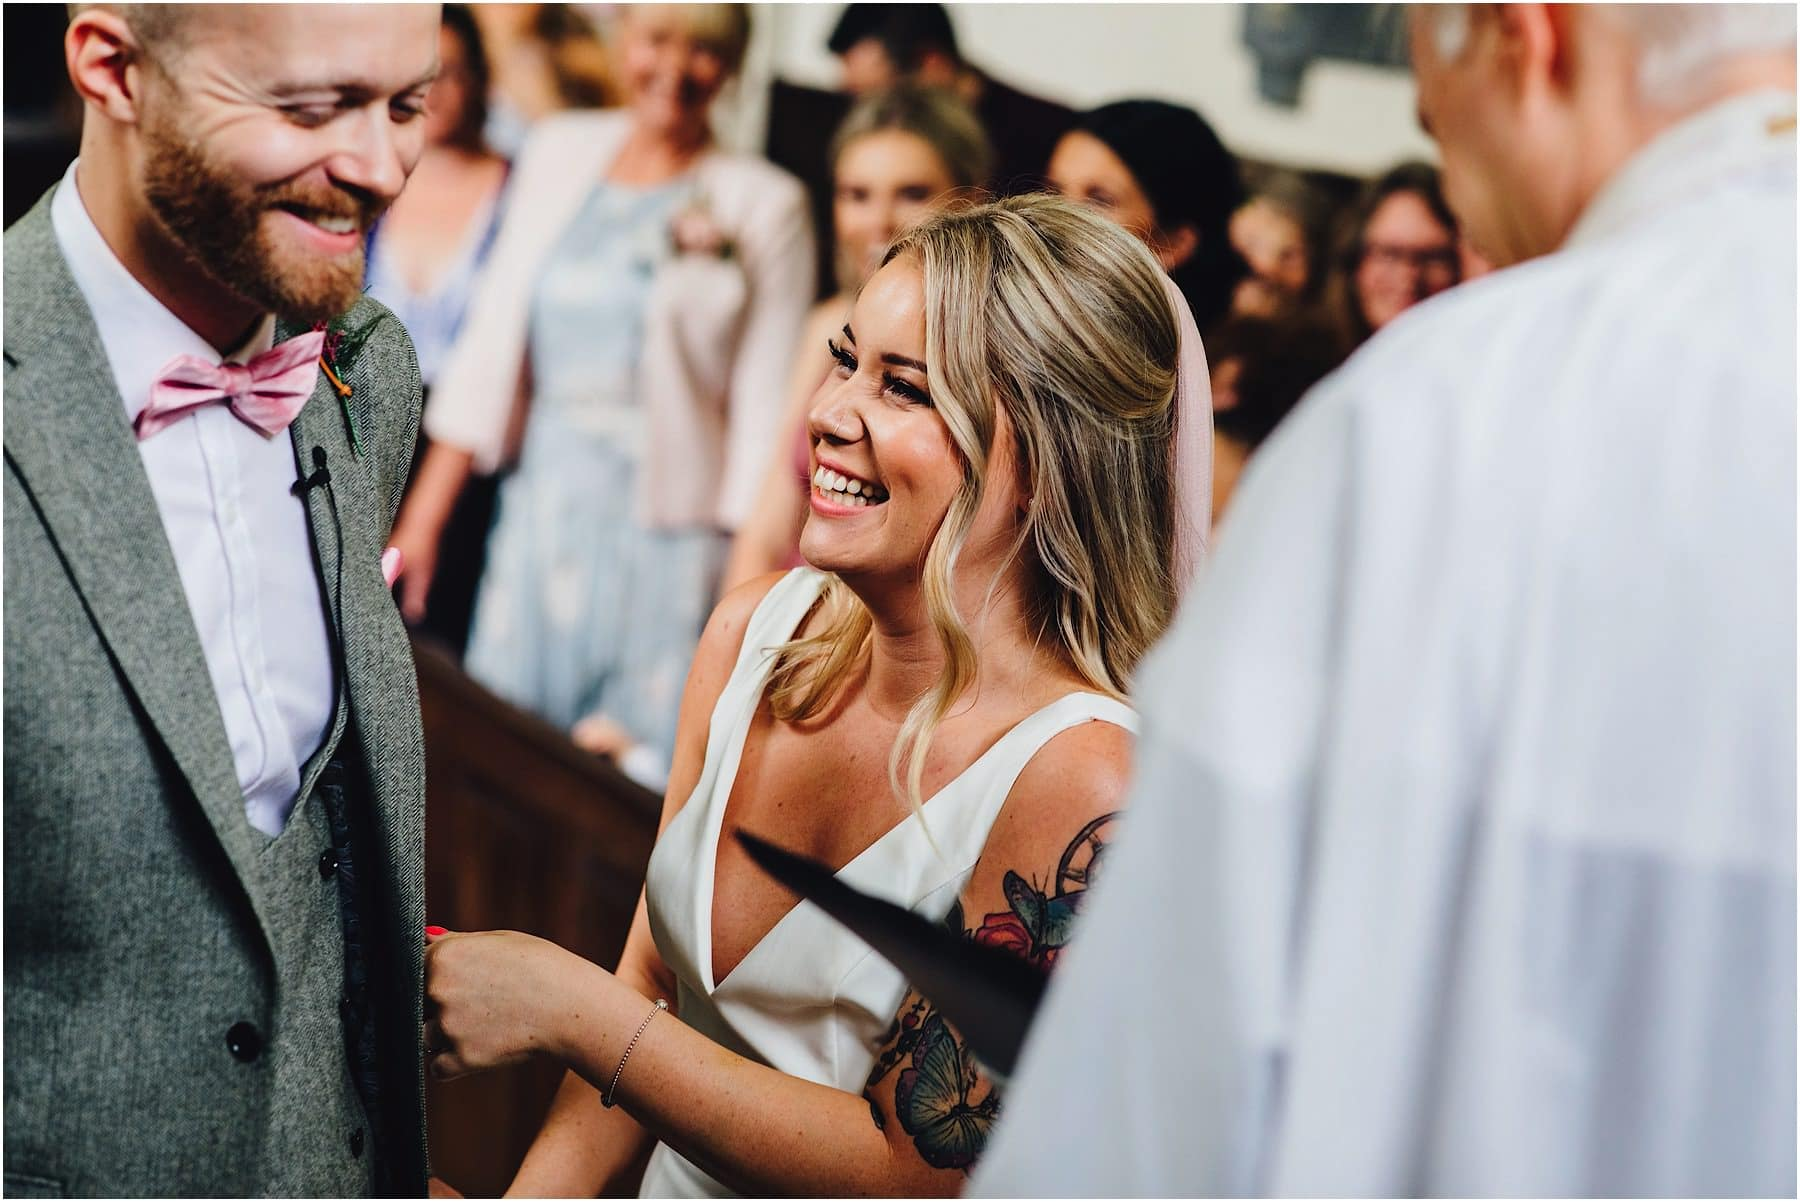 bride belly laughing during wedding service